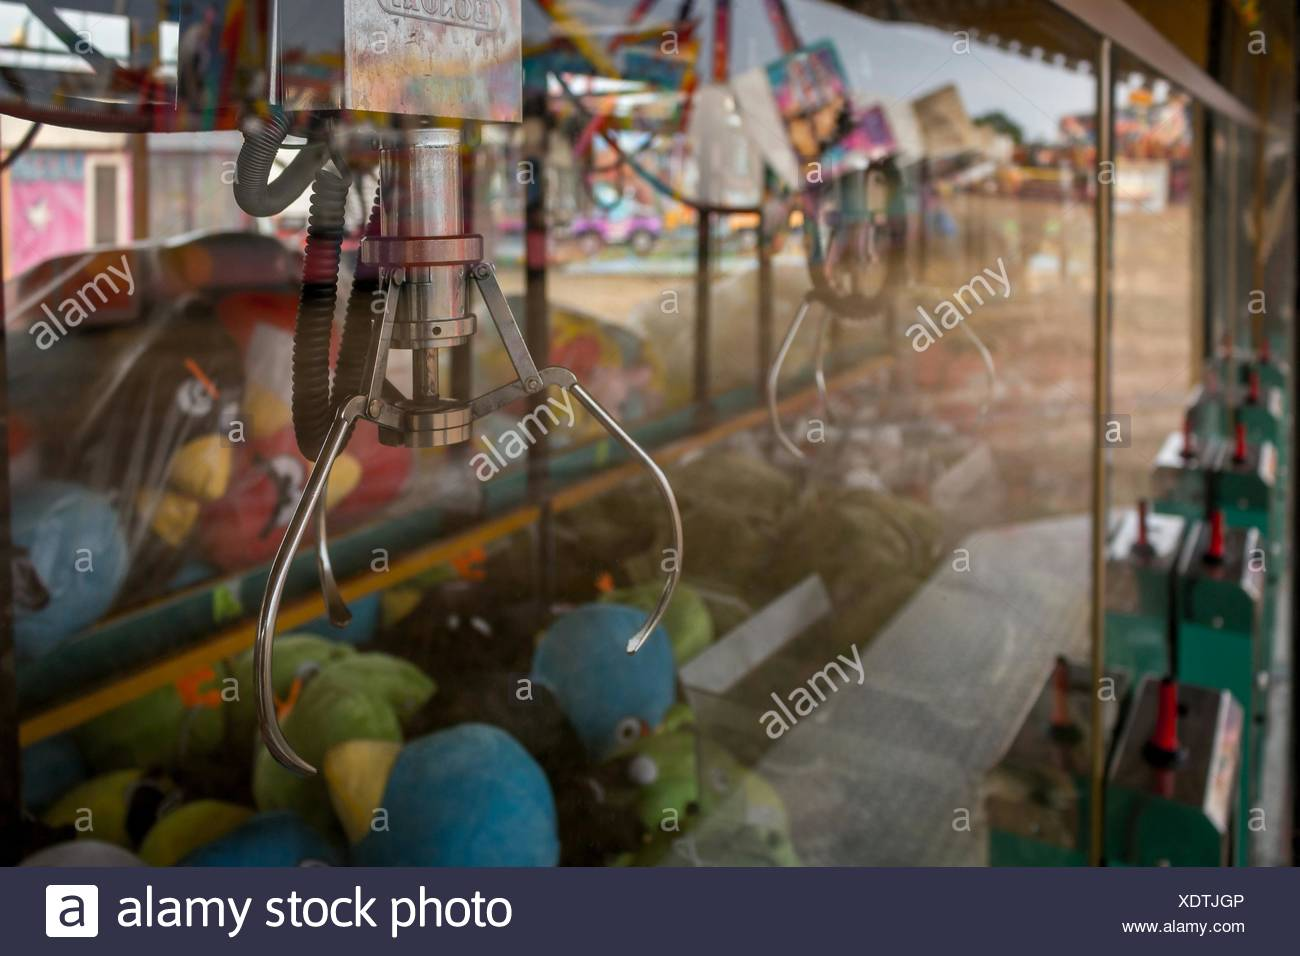 Close-Up Of Claw Machine - Stock Image